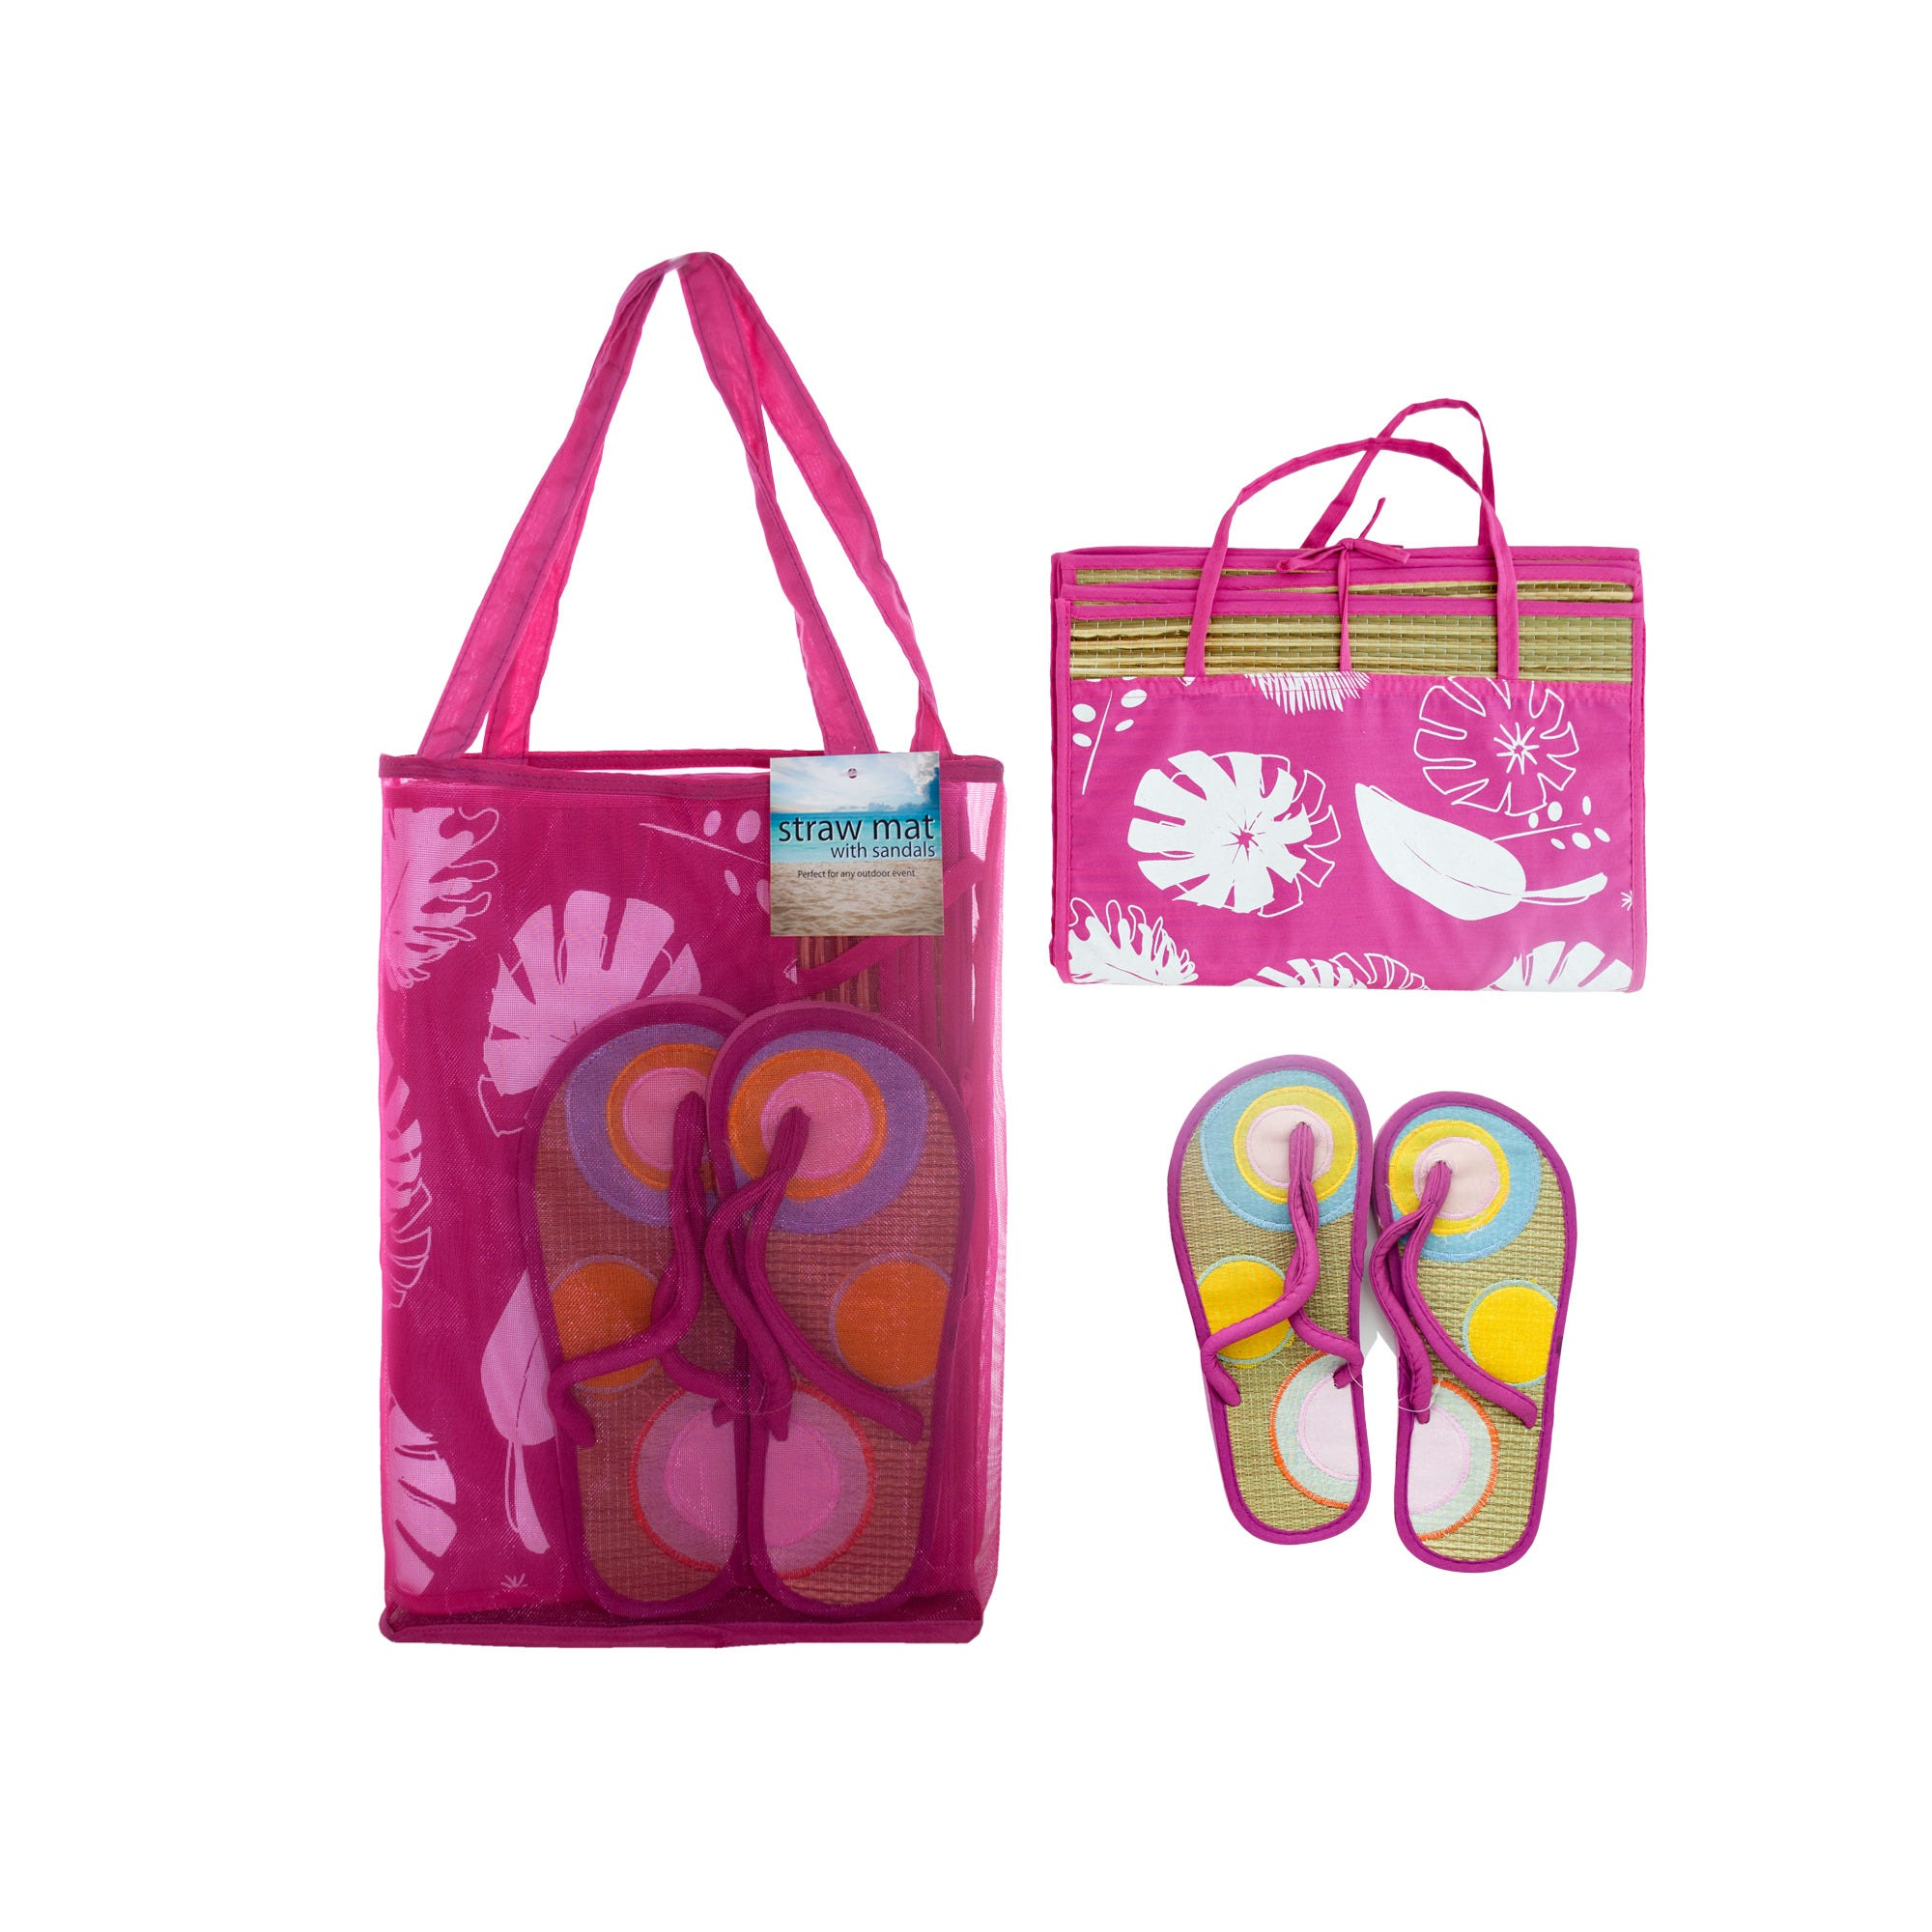 Straw Beach Mat with SANDALS in Carrying Bag Set- Qty 4